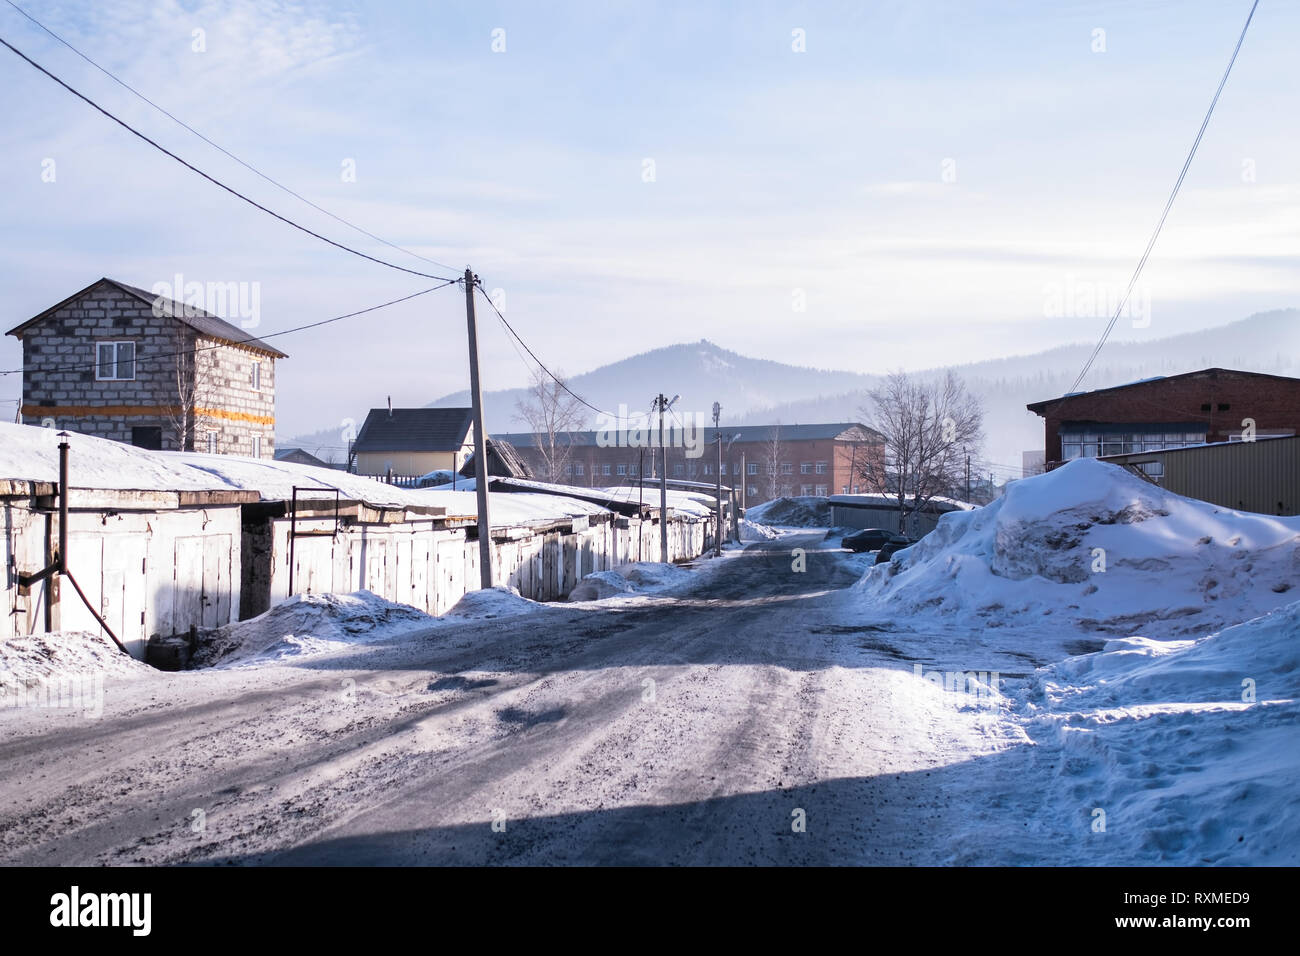 View of the Sheregesh urban locality in Mountain Shoria, Siberia - Russia. - Stock Image